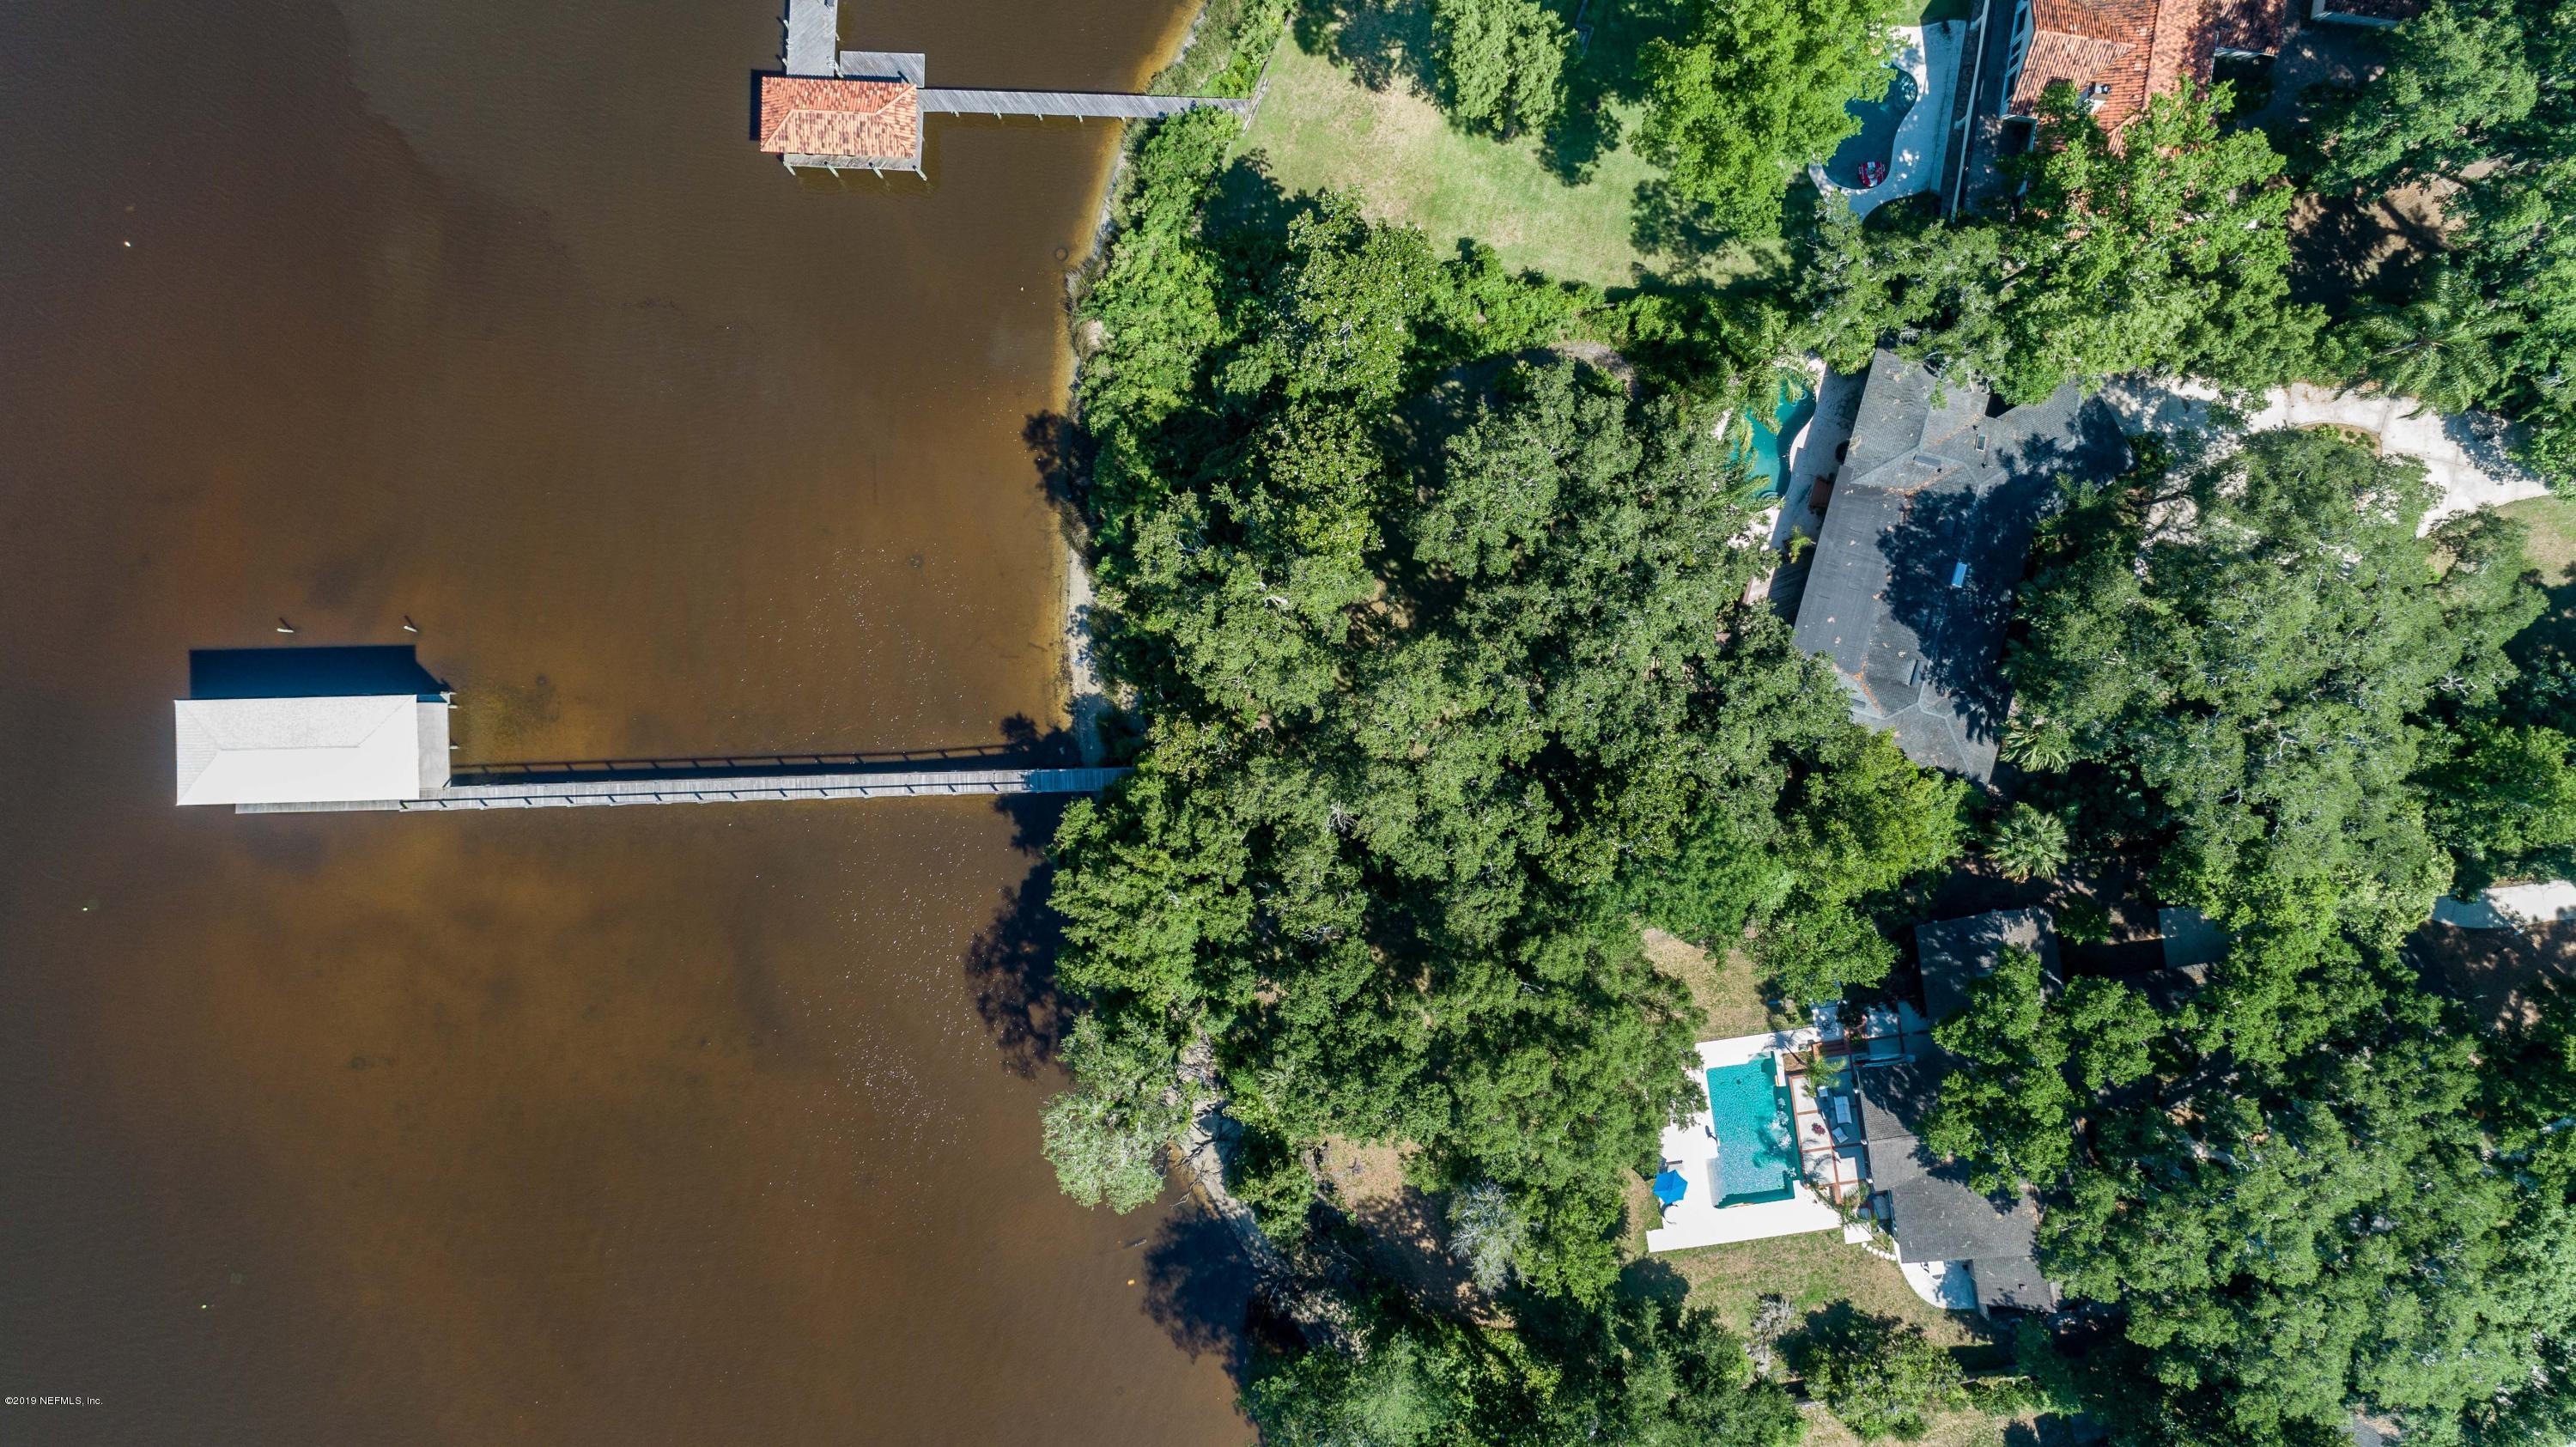 4987 RIVER POINT, JACKSONVILLE, FLORIDA 32207, 3 Bedrooms Bedrooms, ,2 BathroomsBathrooms,Residential - single family,For sale,RIVER POINT,1000910